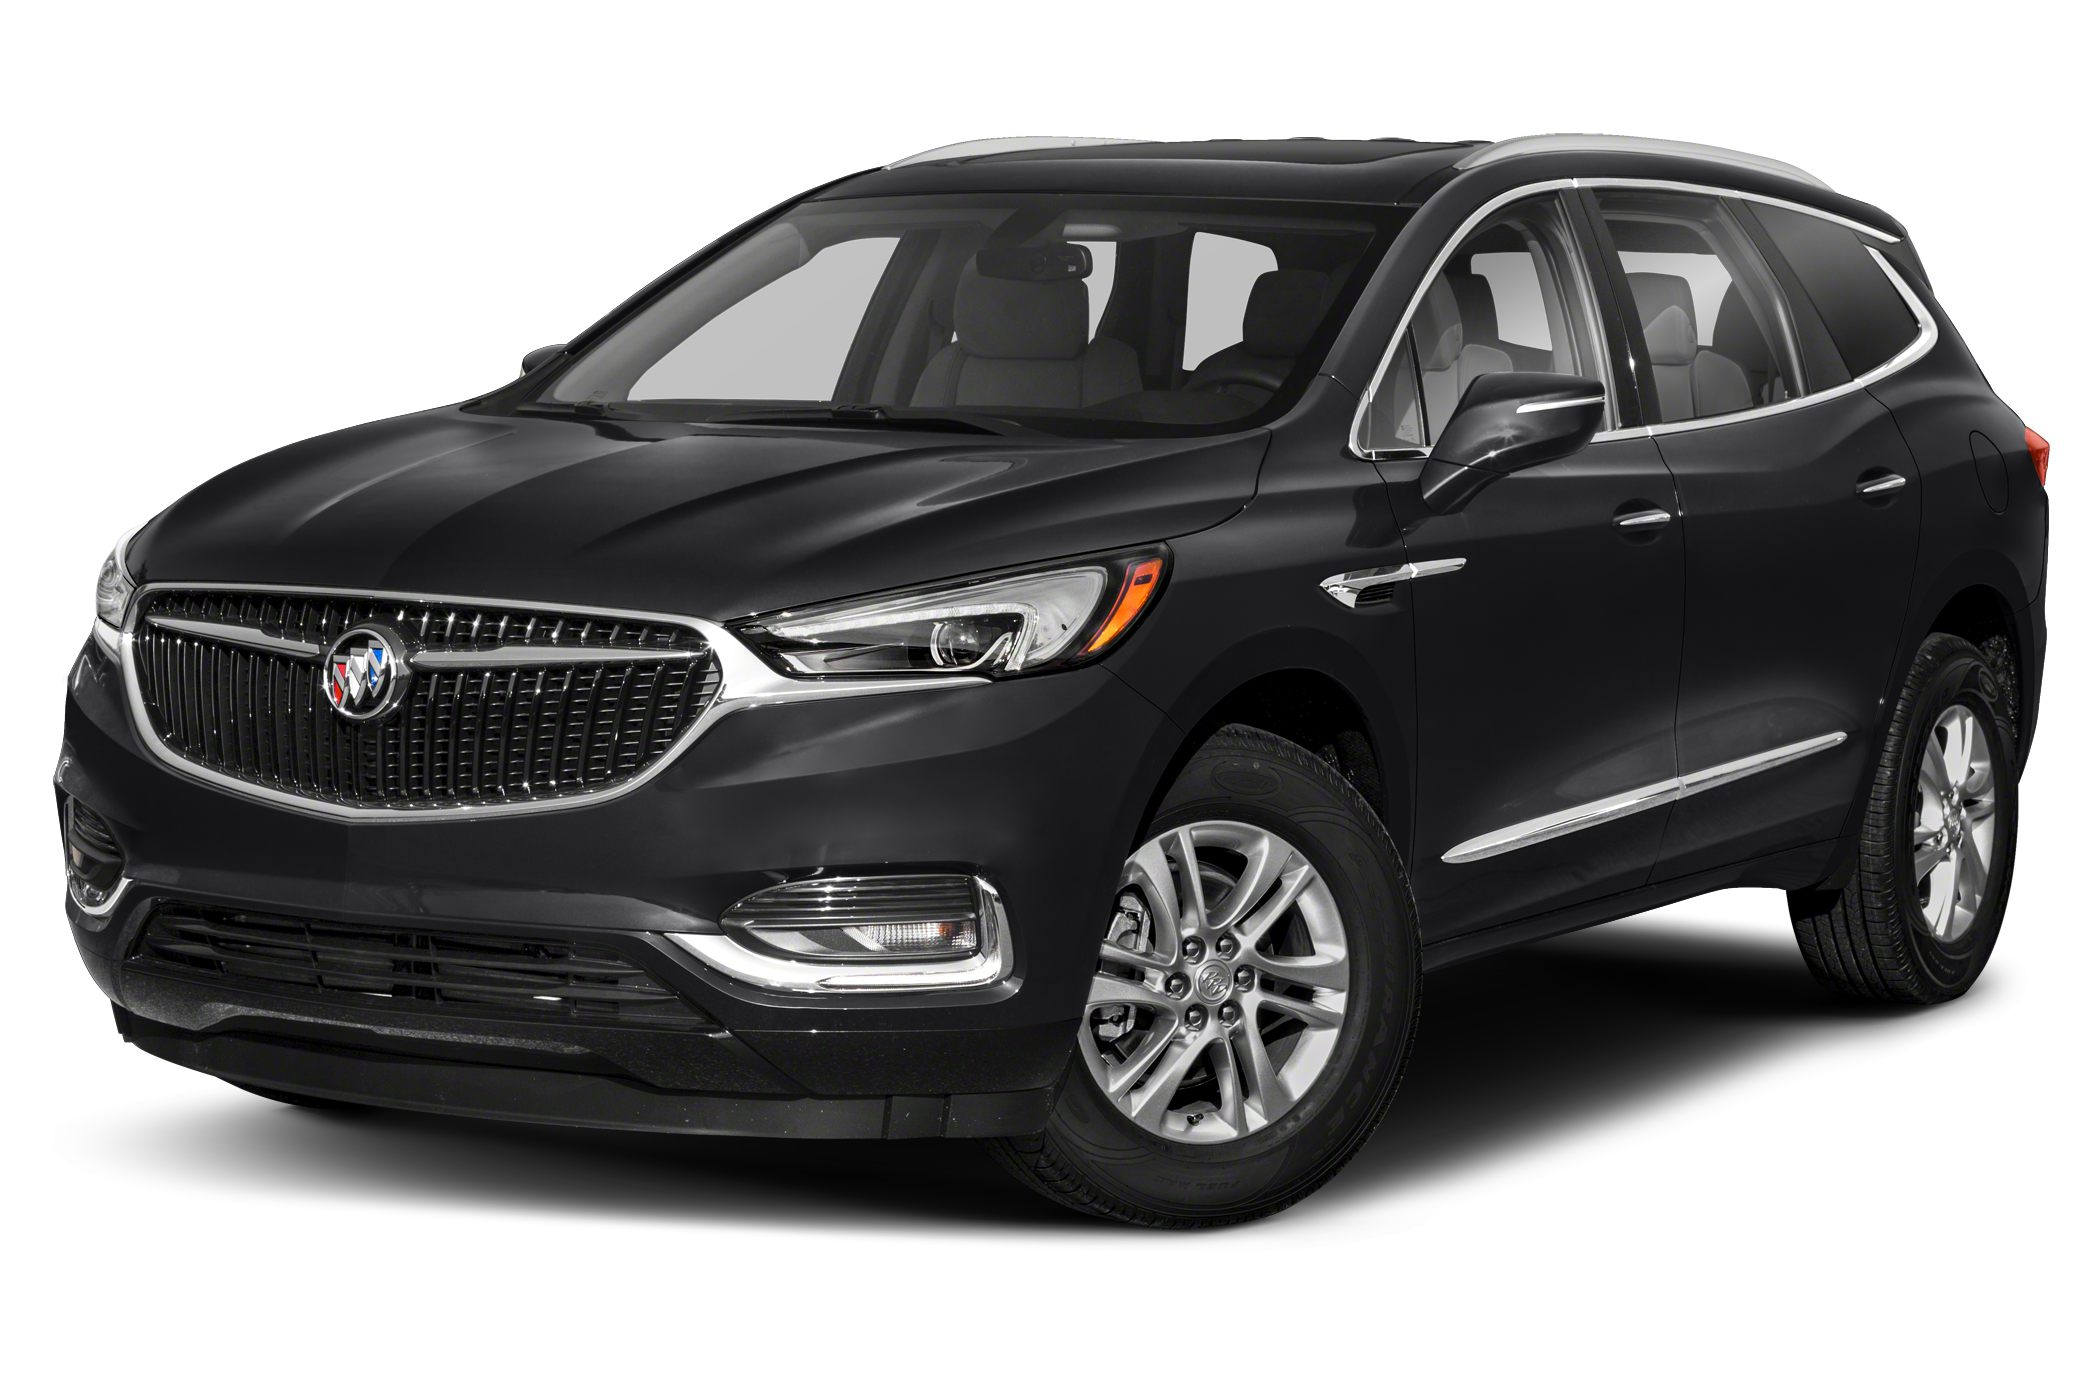 2020 Buick Enclave Redesign and Review